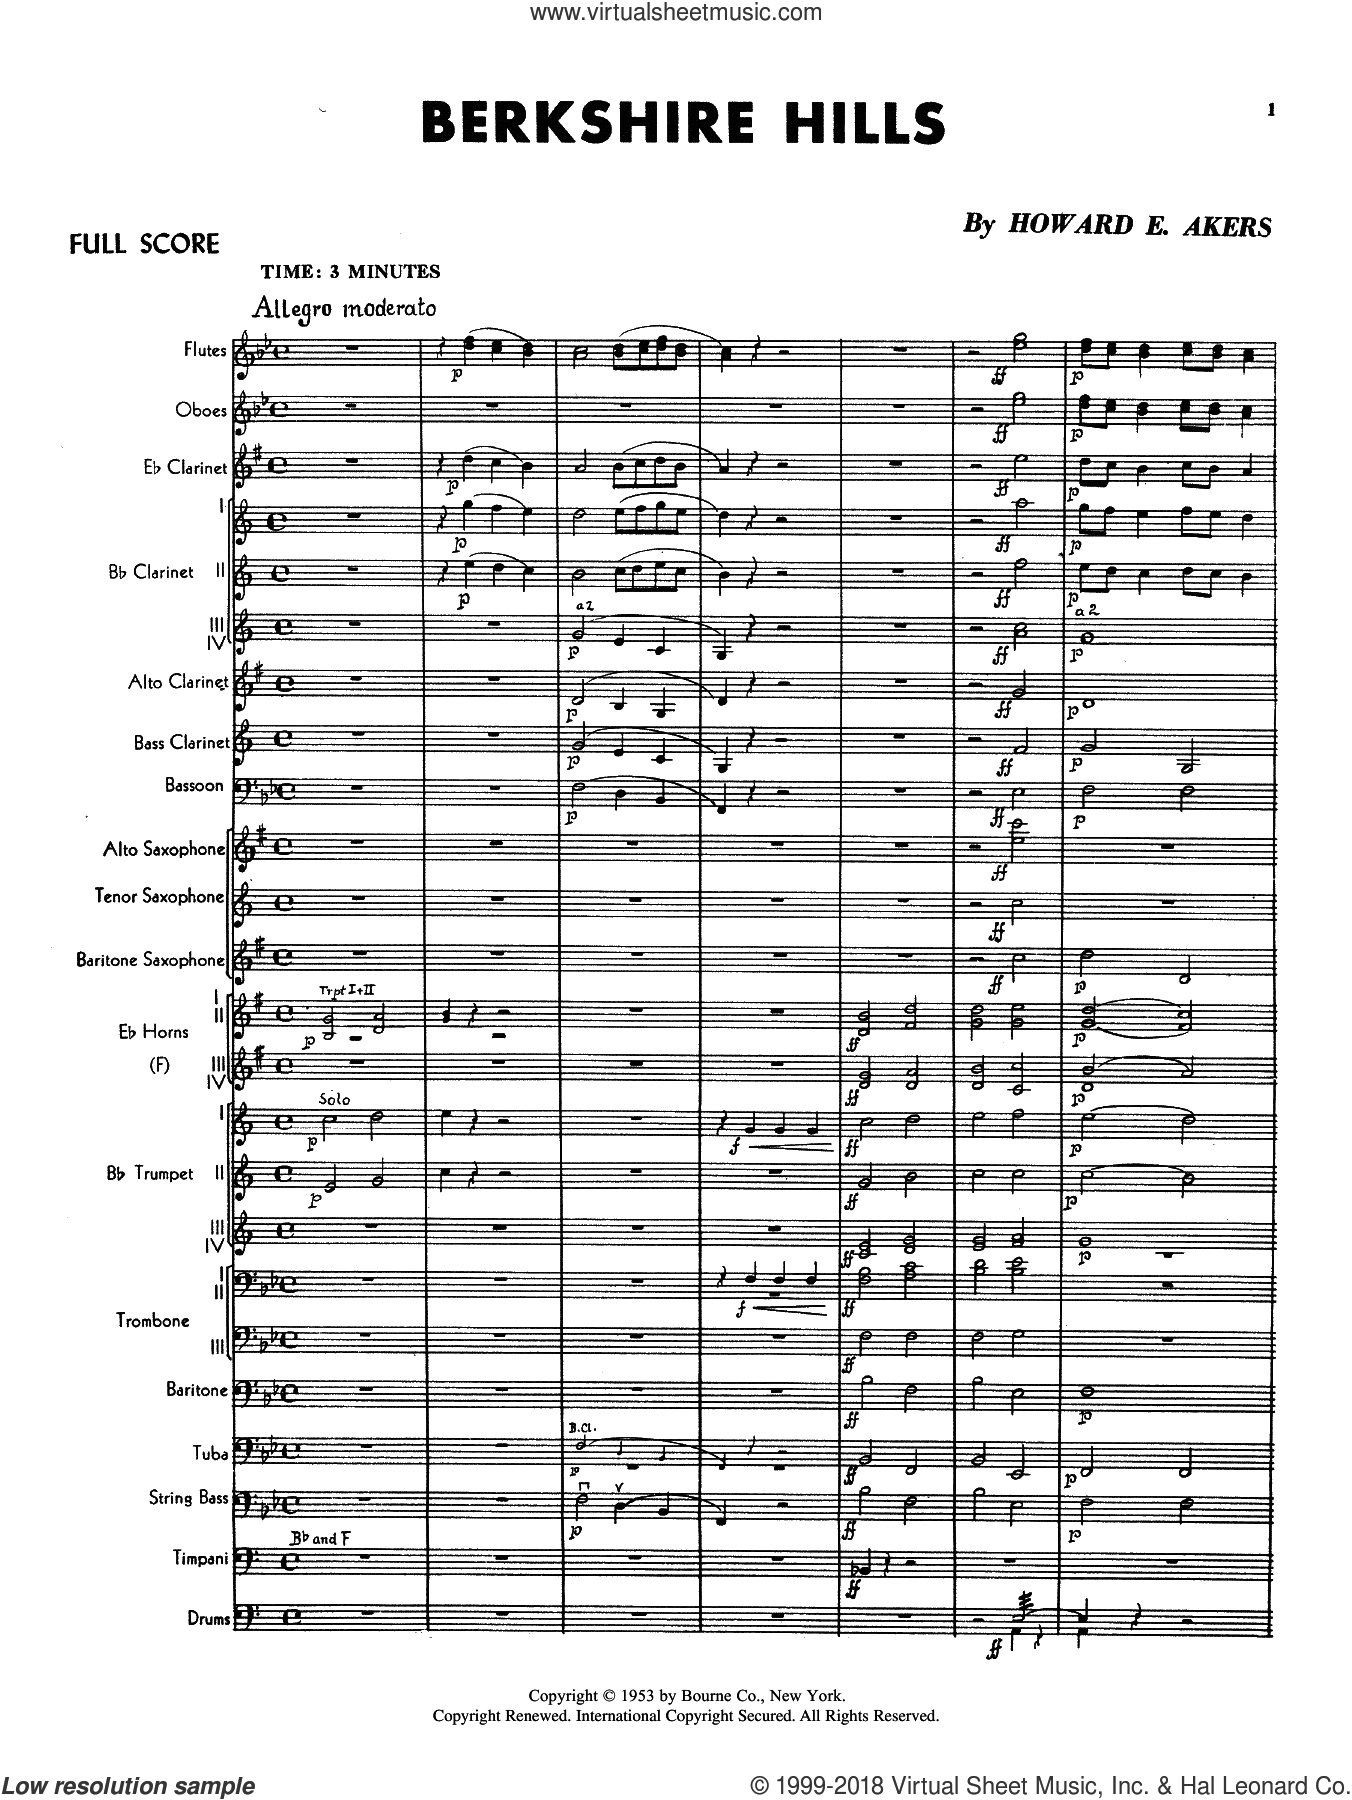 Berkshire Hills (COMPLETE) sheet music for concert band by Howard E. Akers, intermediate